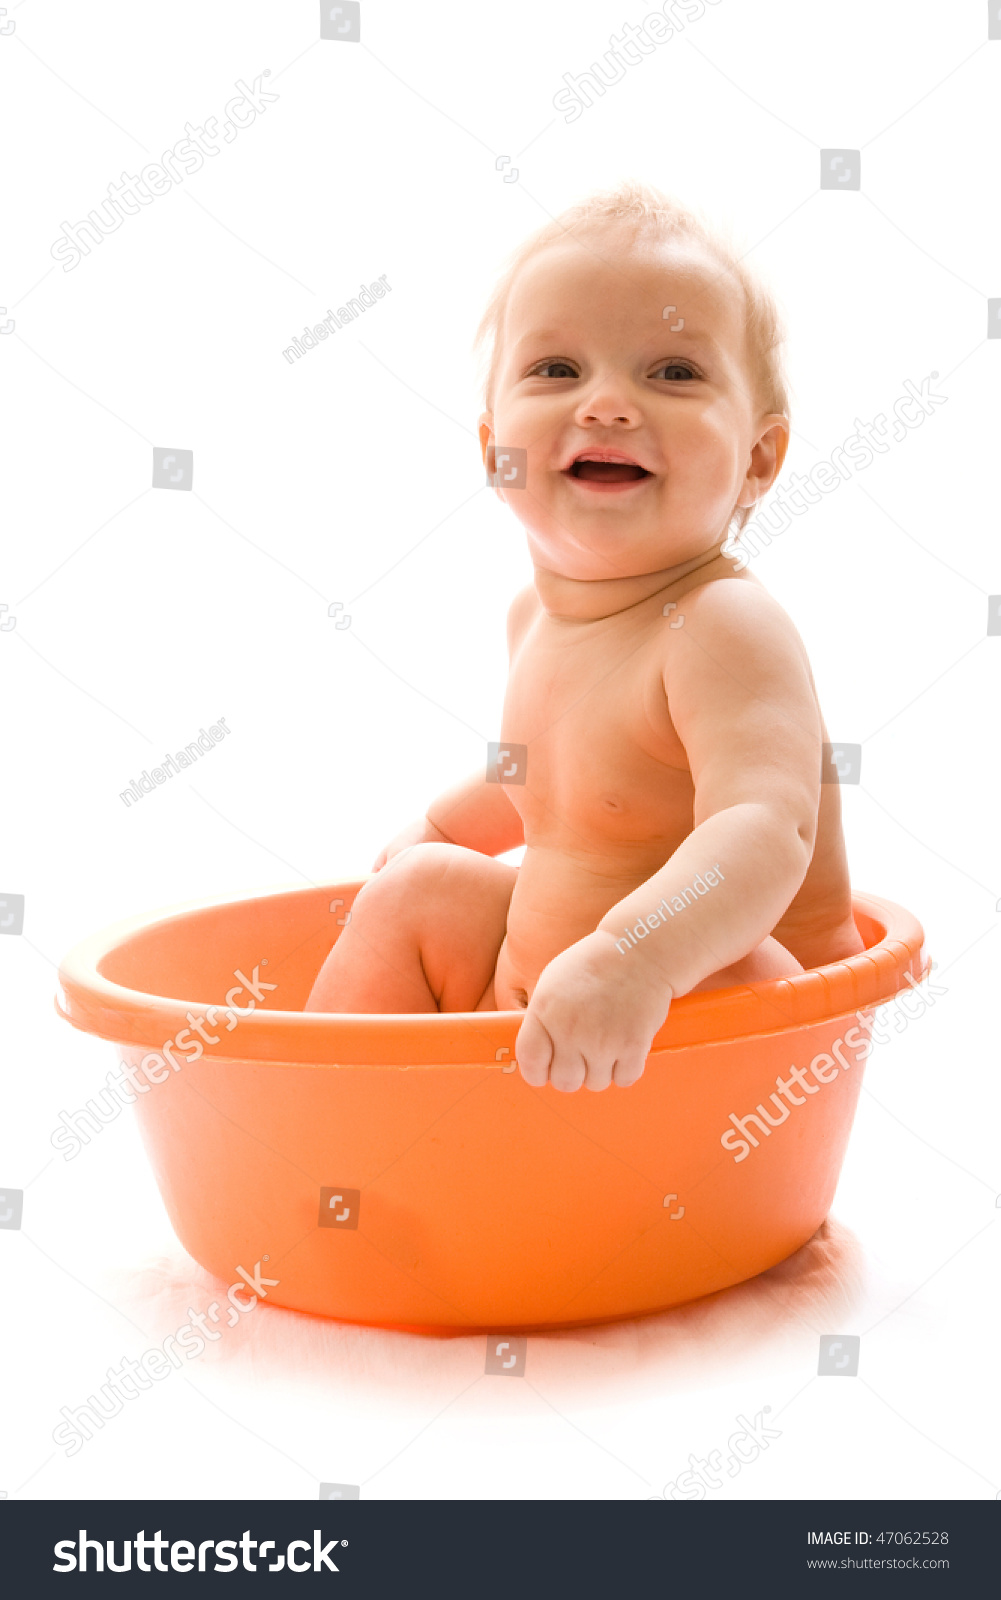 Cute Baby Having Bath Tub Isolated Stock Photo (Edit Now) 47062528 ...